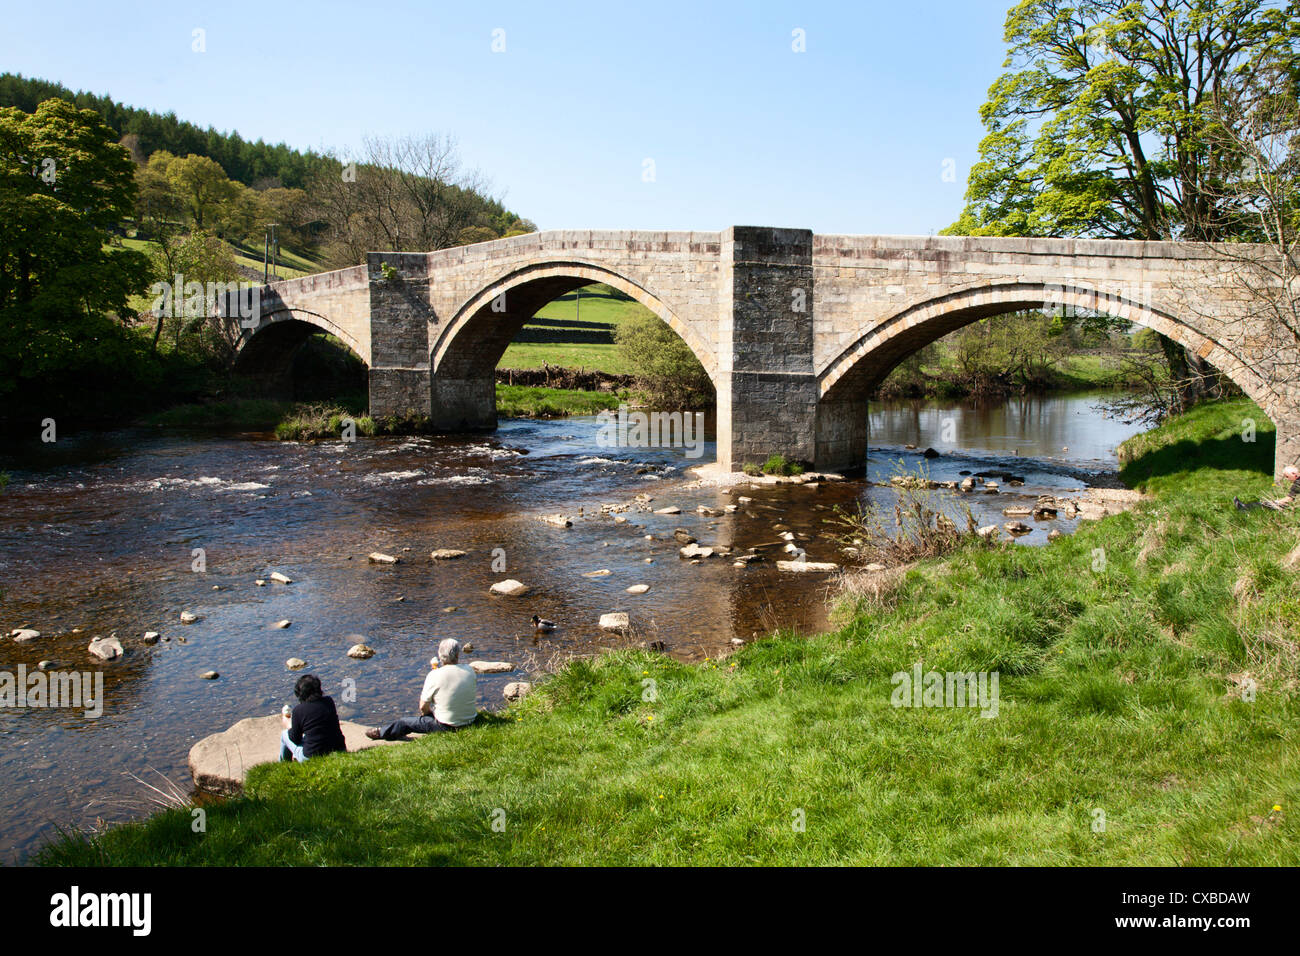 People eating ice cream at Barden Bridge over the River Wharfe, Wharfedale, Yorkshire Dales, Yorkshire, England, - Stock Image